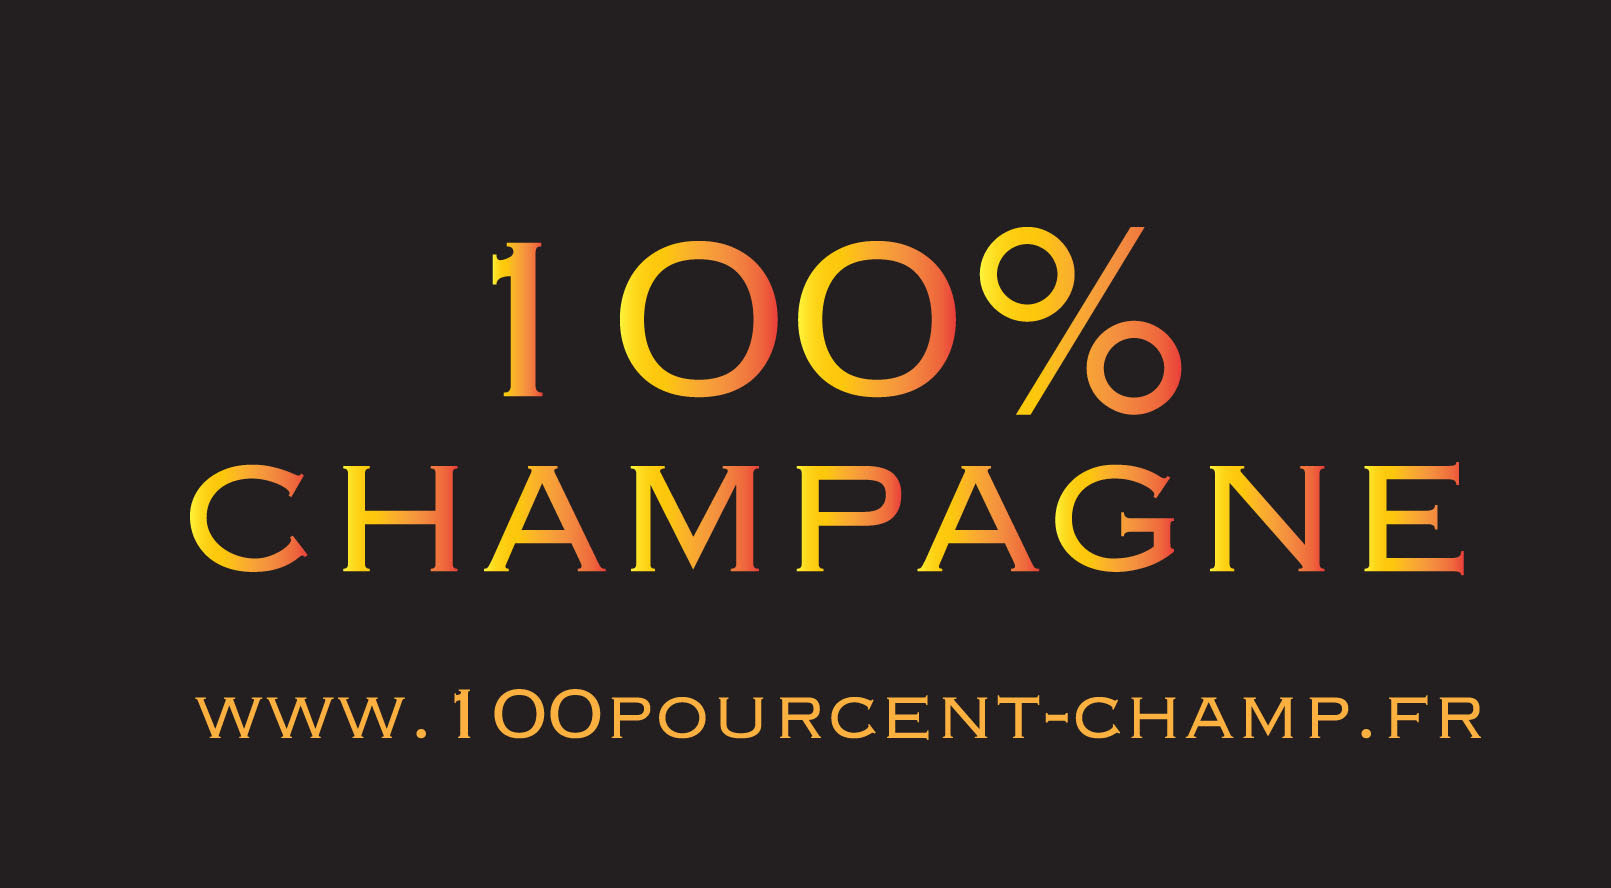 100% Champagne